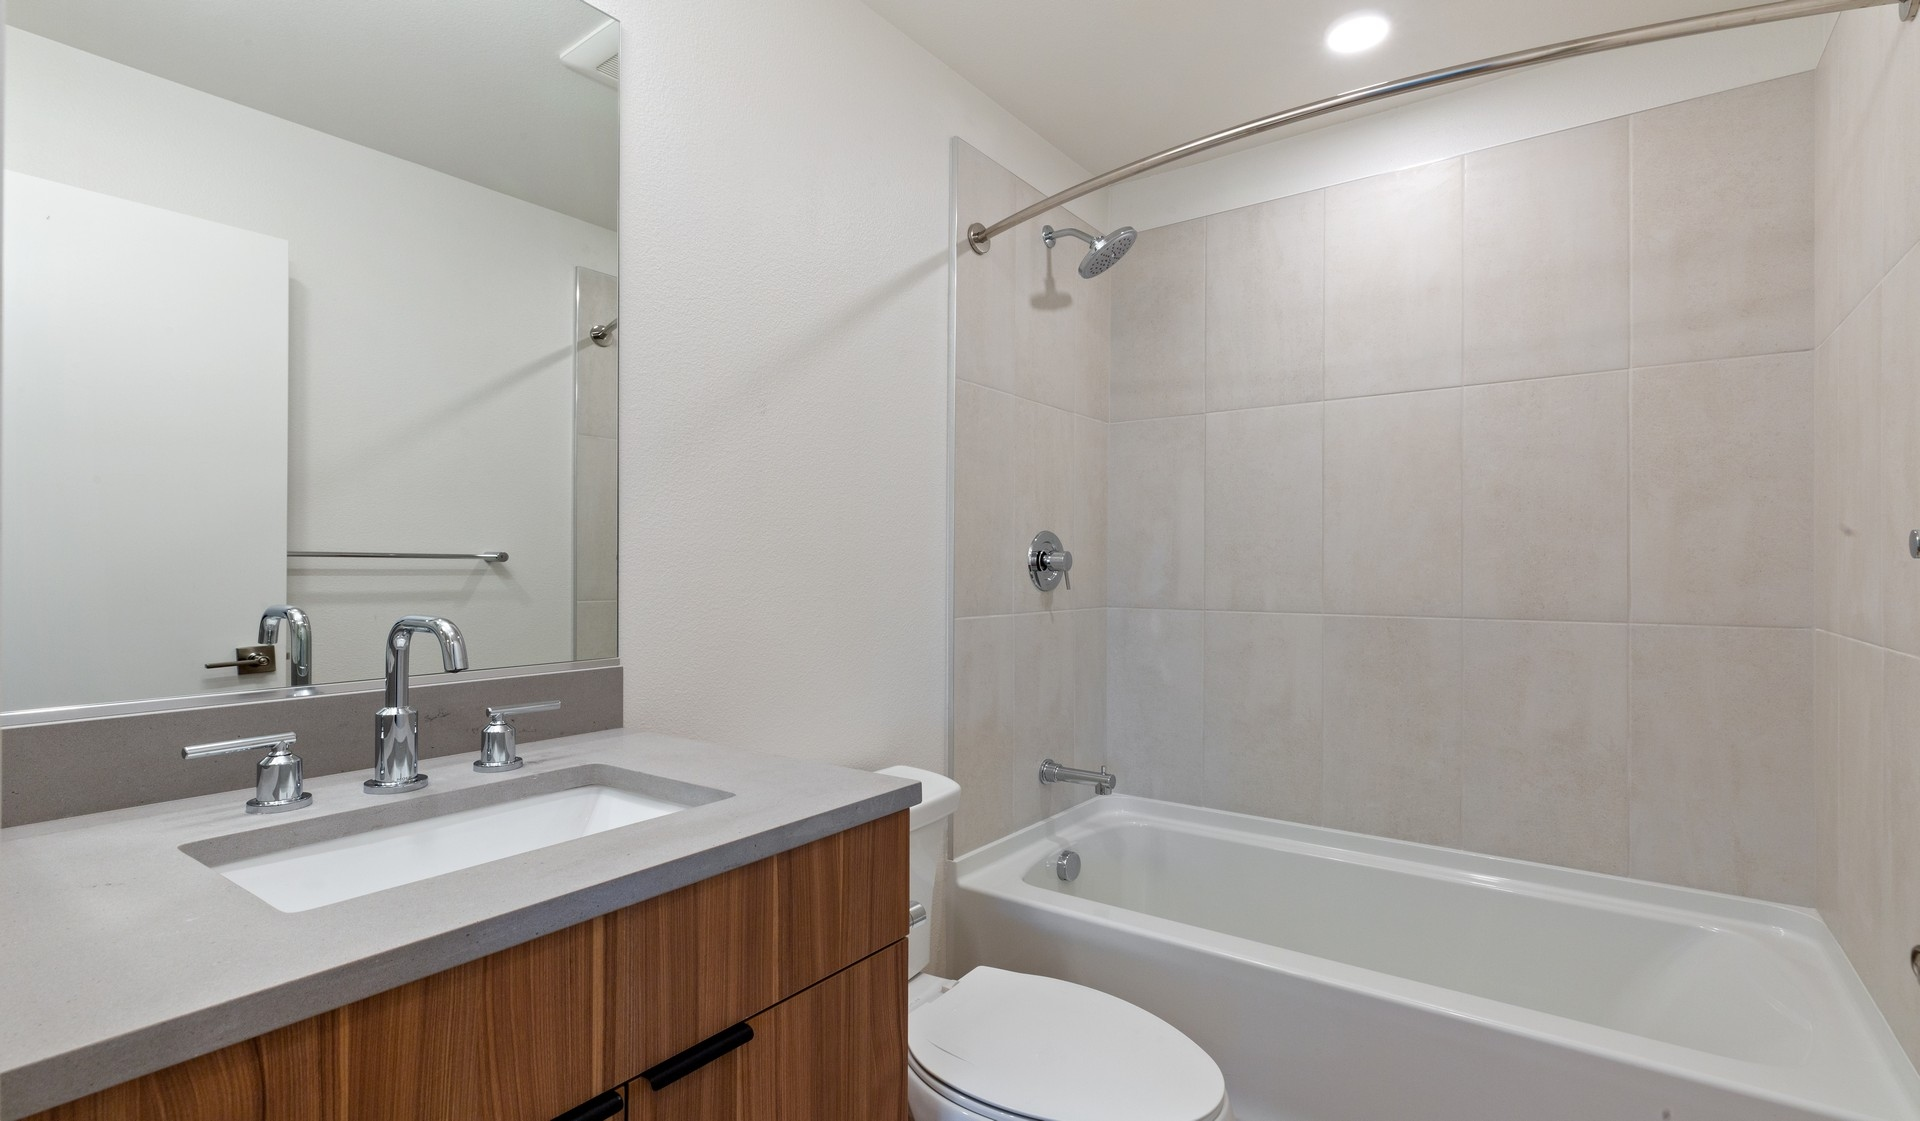 707 Leahy - Redwood City - bath